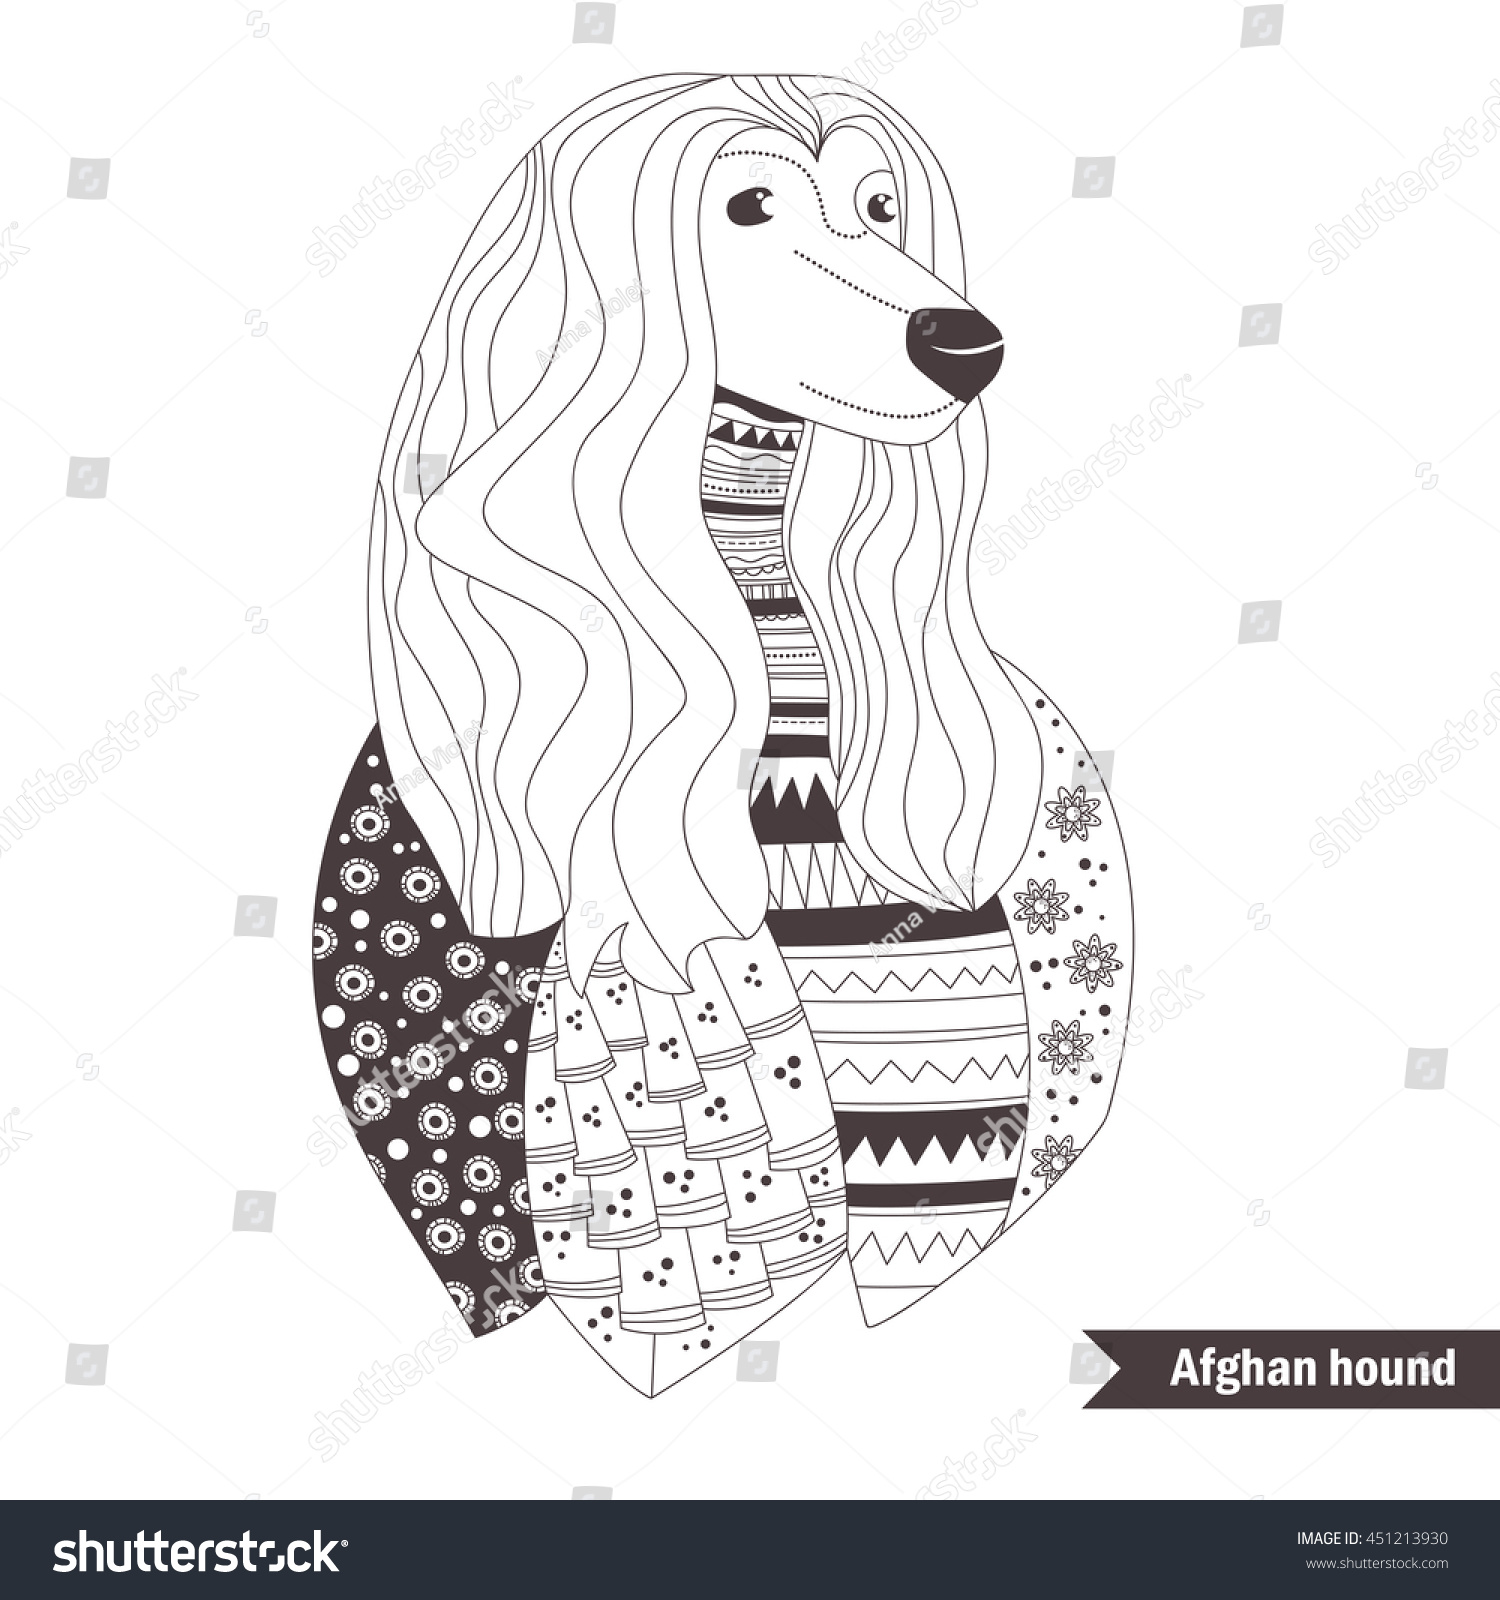 afghan hound zentangle style coloring book stock vector 451213930